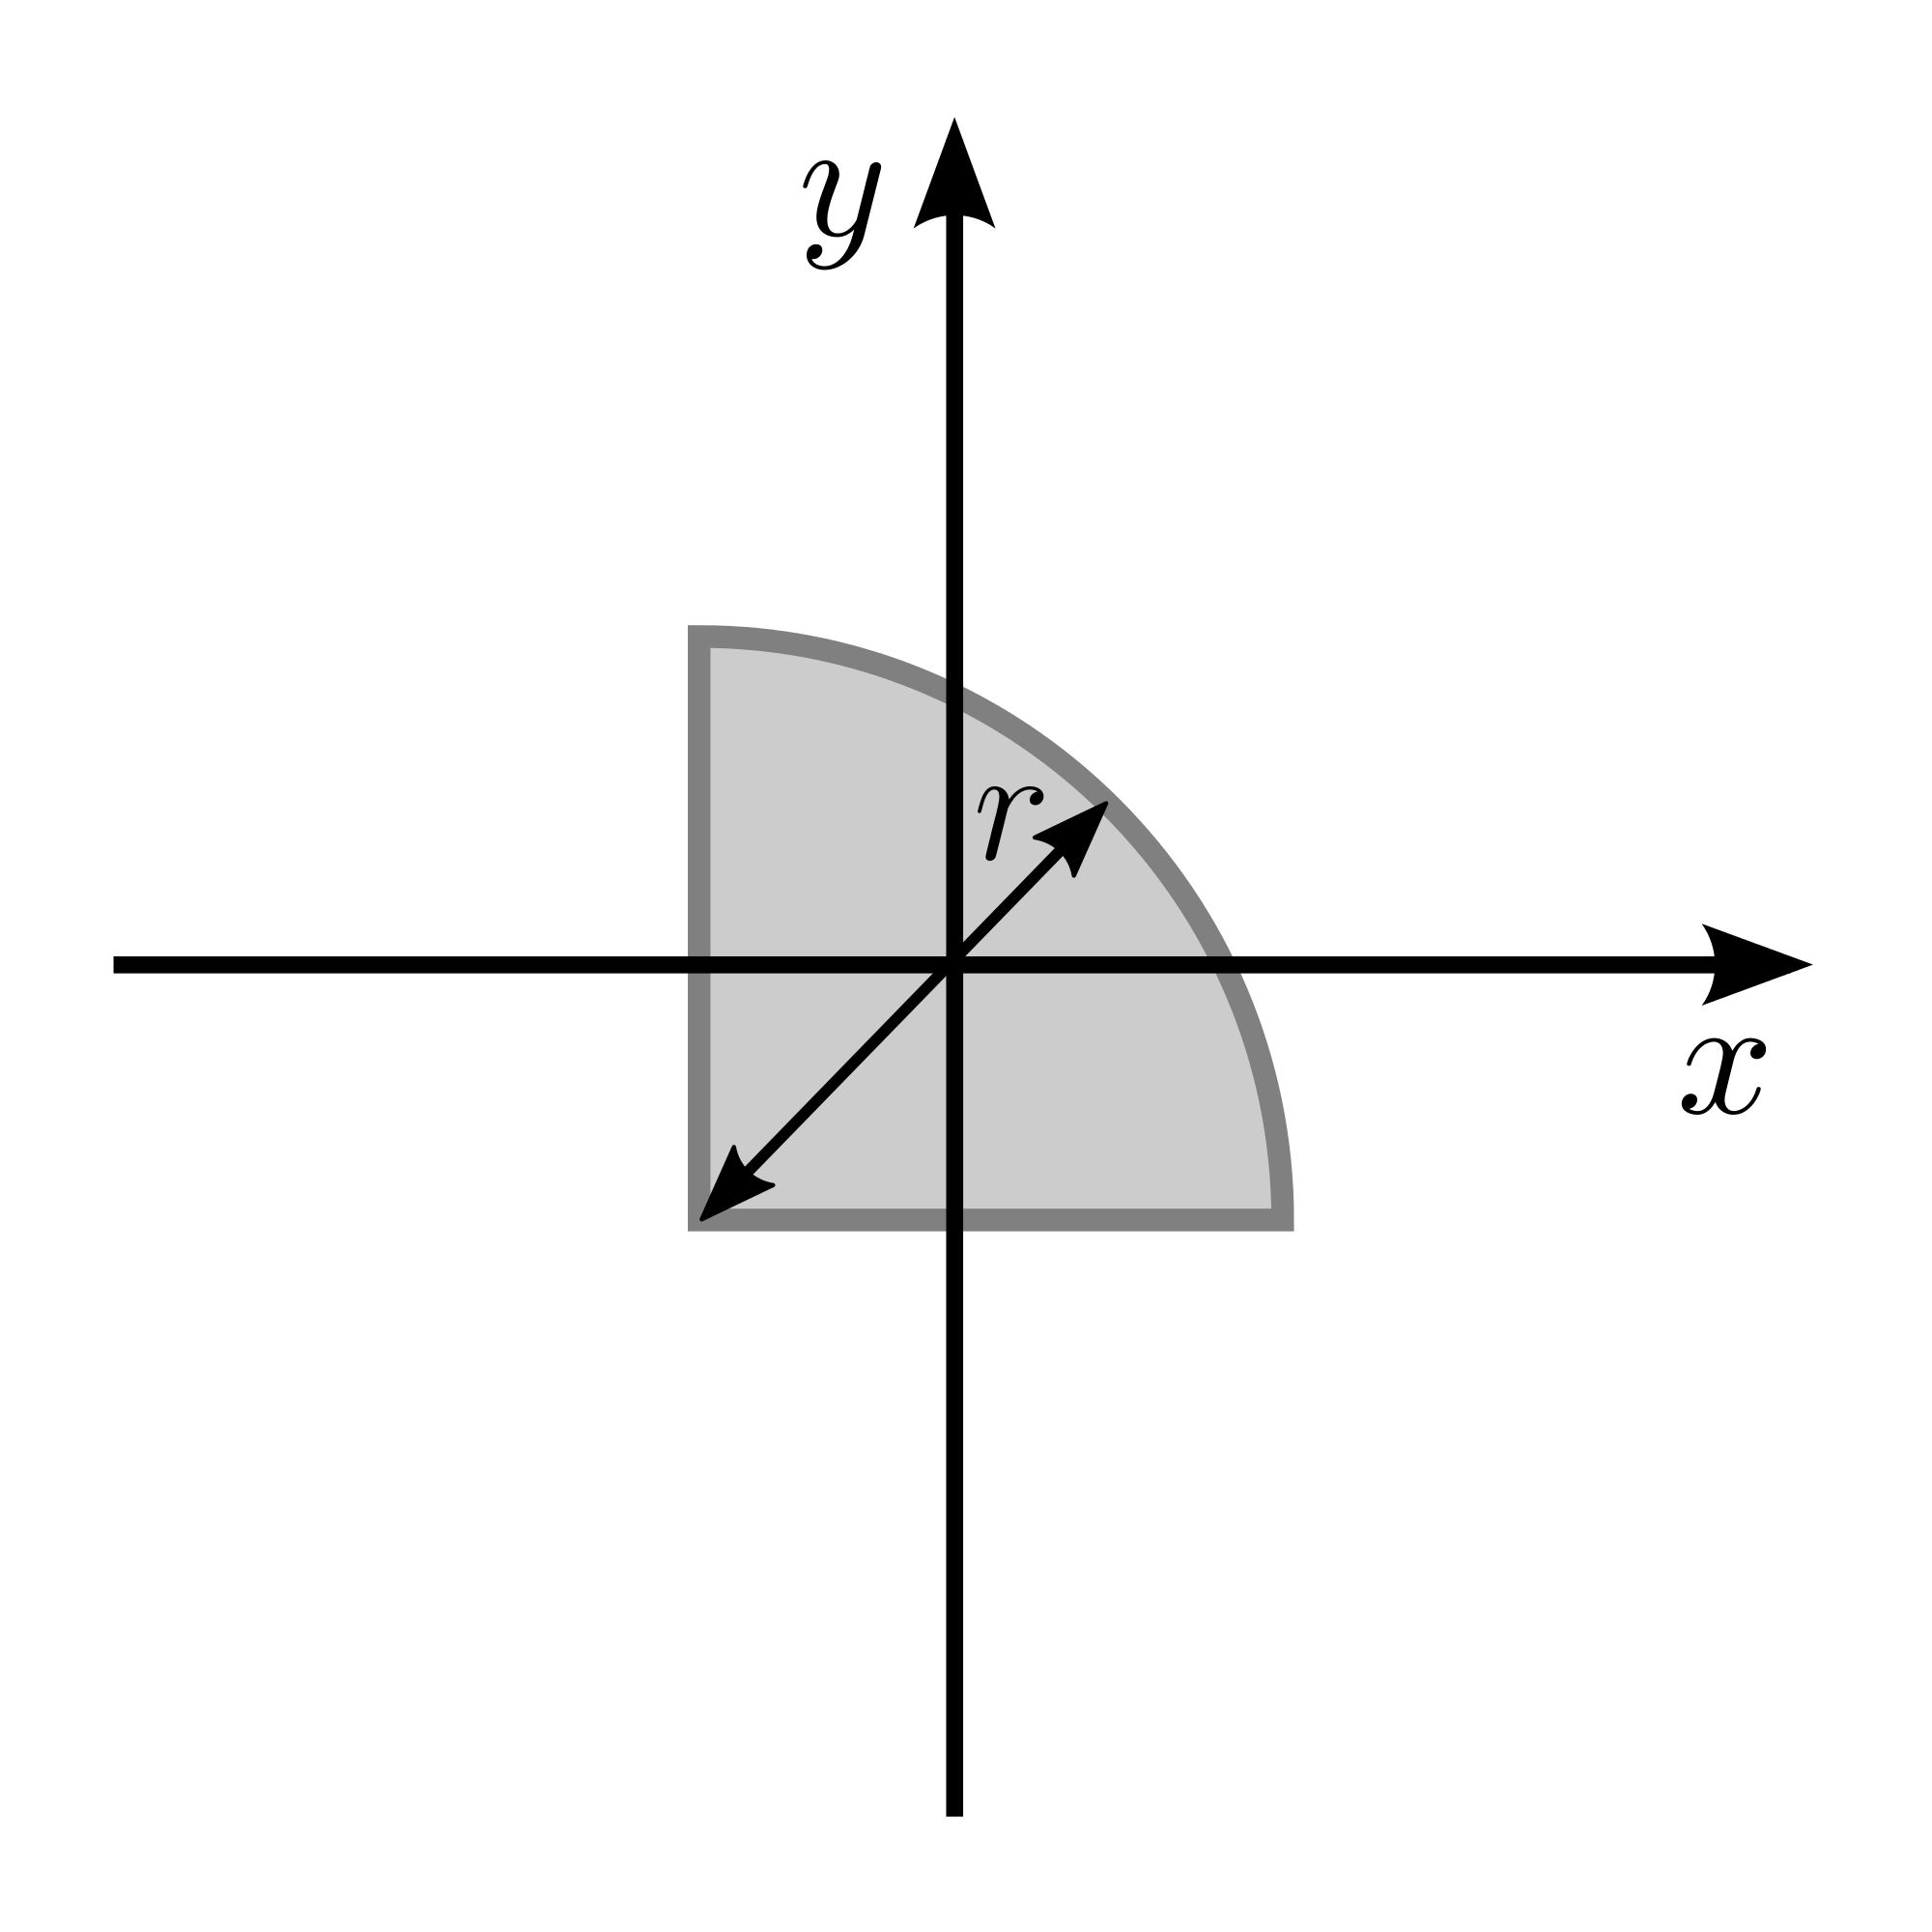 Quarter circle png. File moment of area